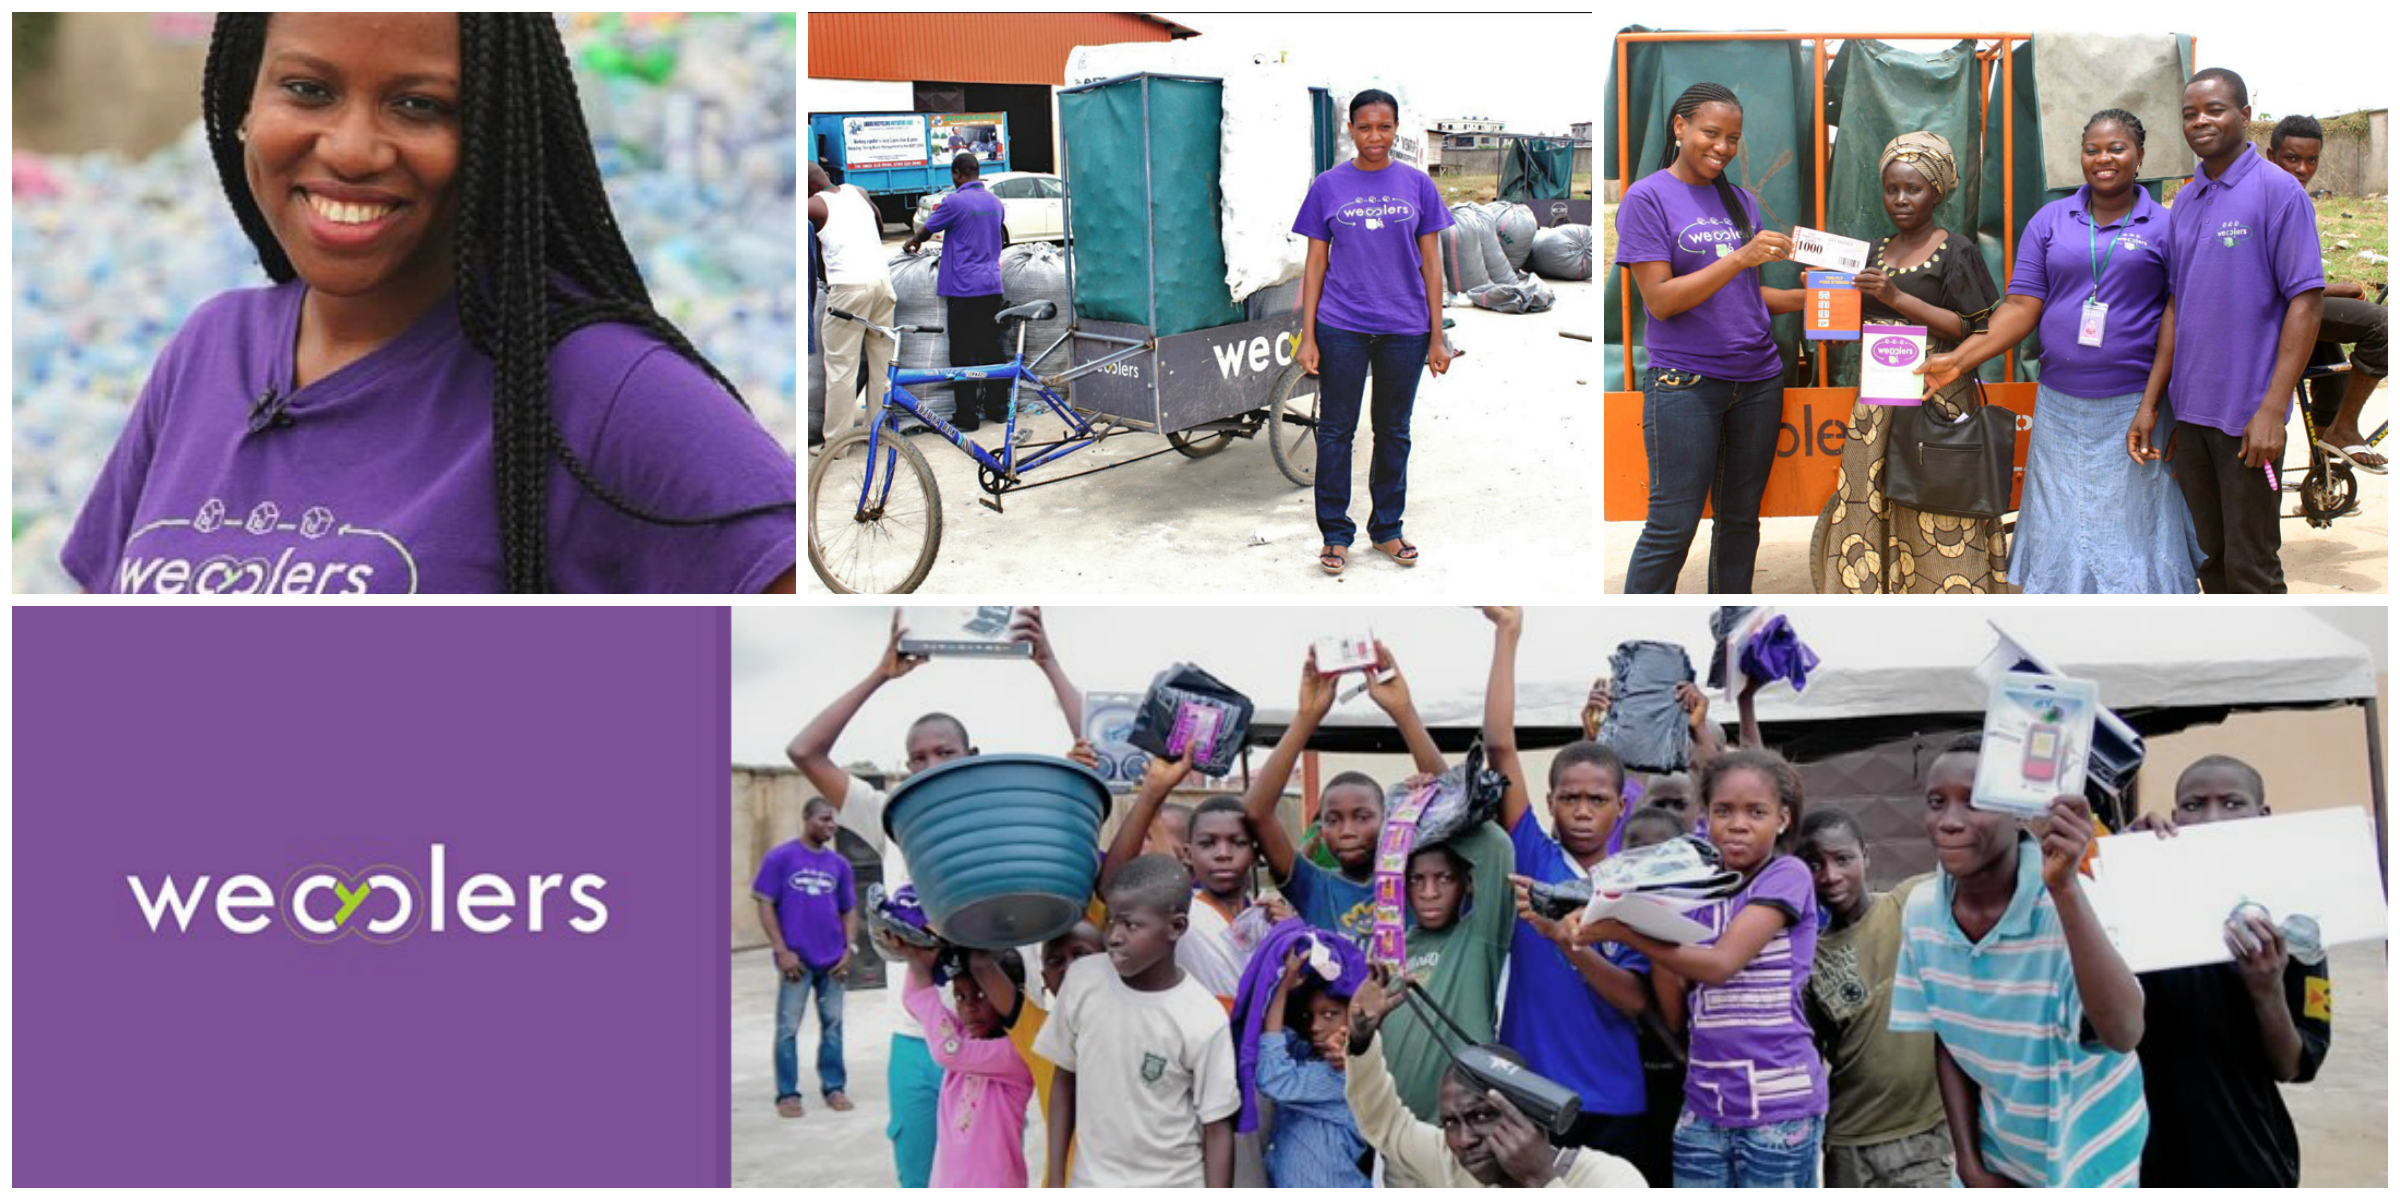 Bilikiss Kola-Abiola, co-founder of  WeCyclers  (Nigeria)